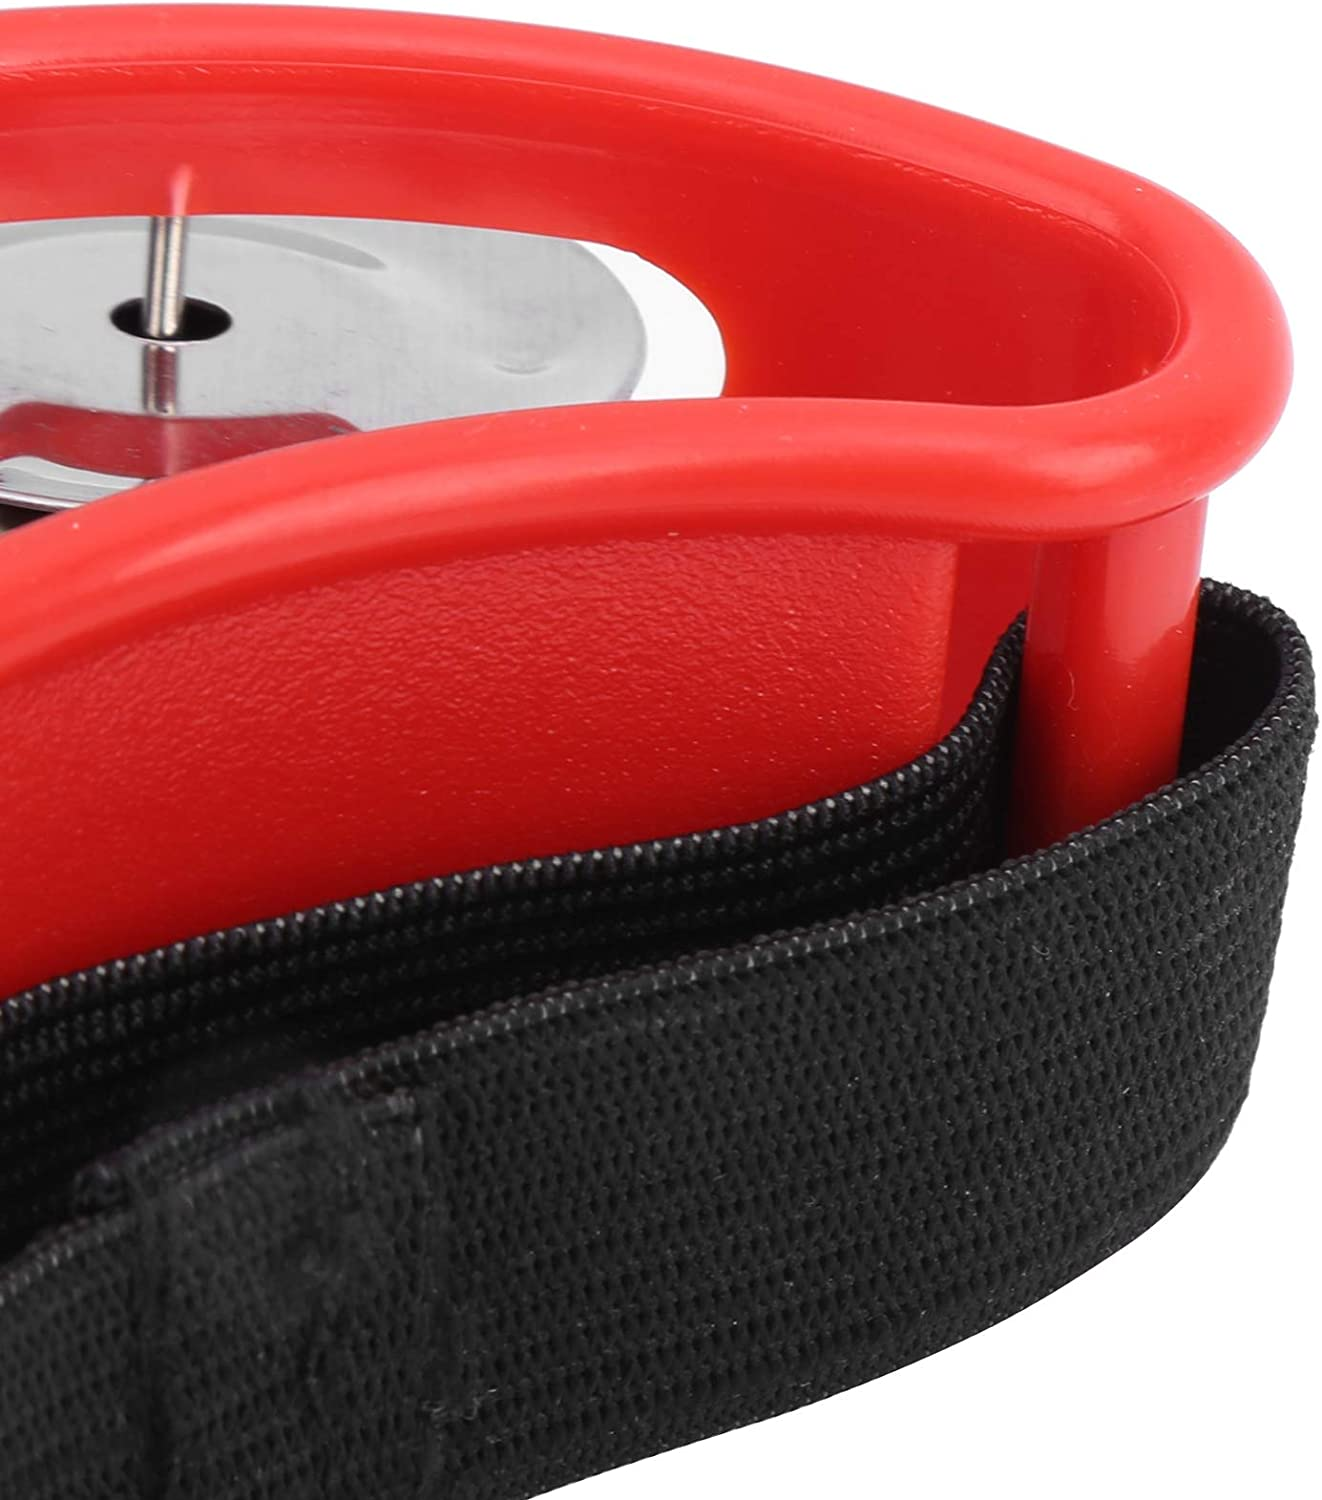 Red Foot Tambourine with Double Row for Cajon Box Drum Companion Accessory